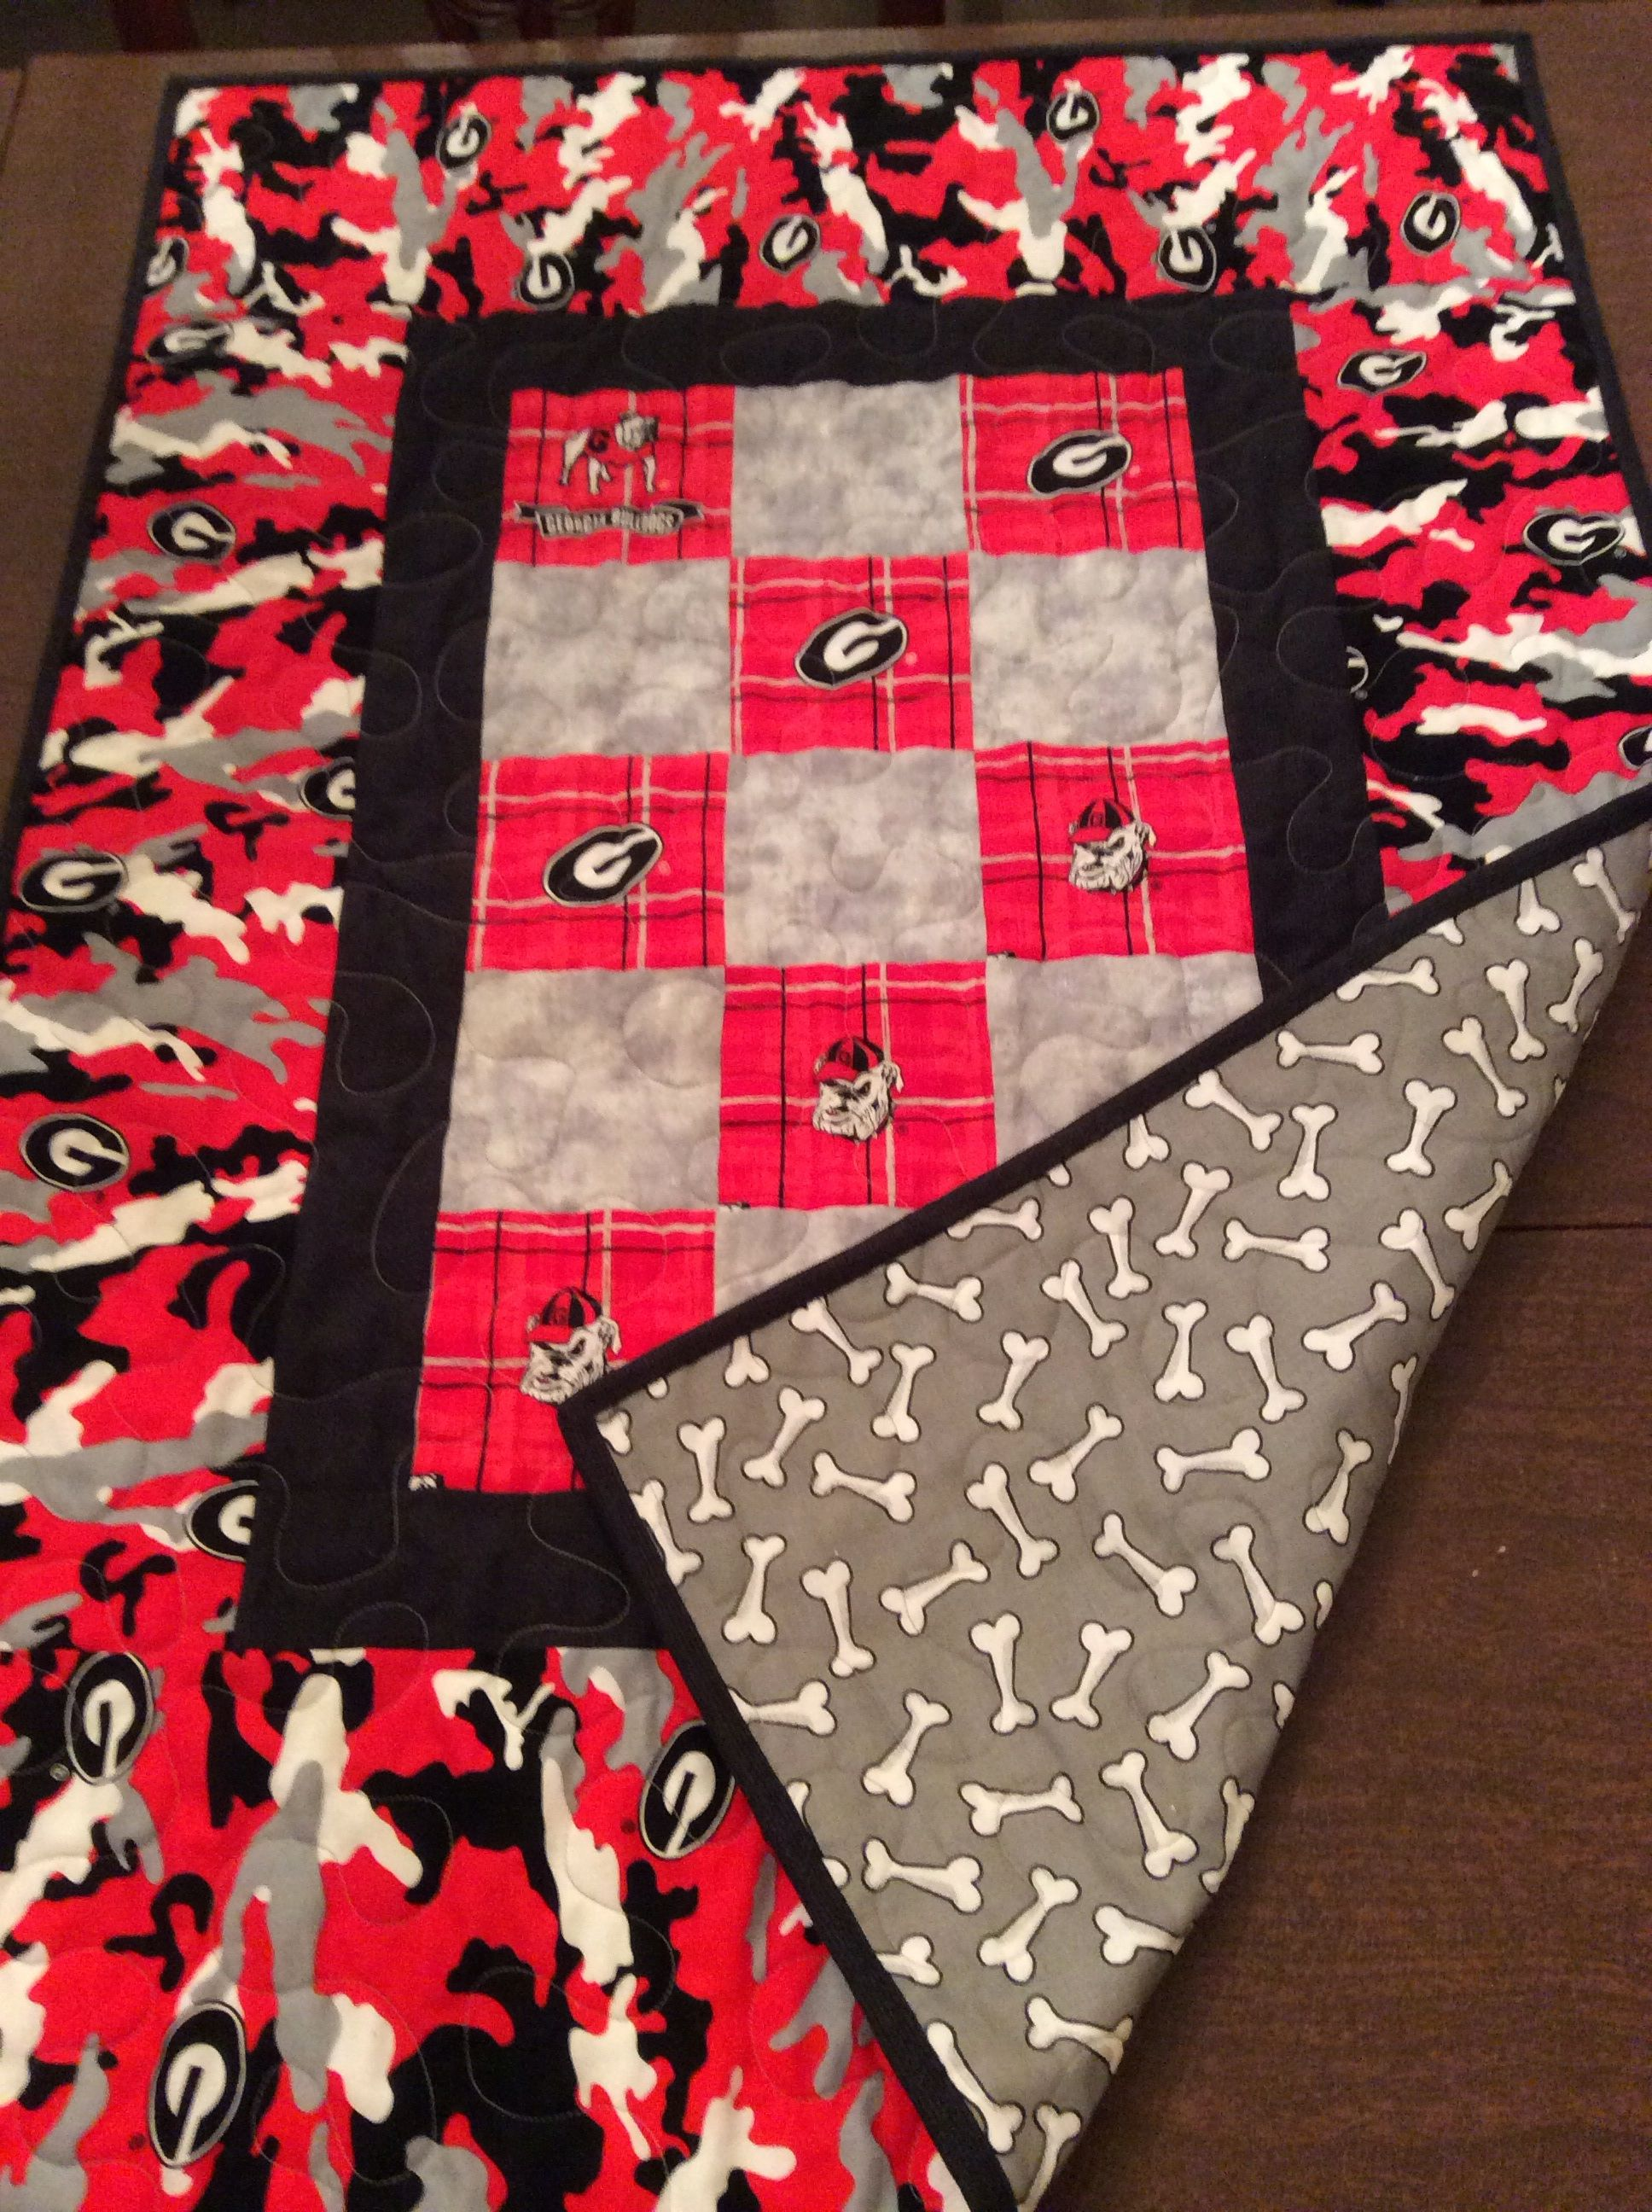 Uga Dog Quilt 28x38 Handmade By Joan Madar Perfect For The Pooch To Use When Lounging On The Couch Dog Quilts Quilts Baby Quilts